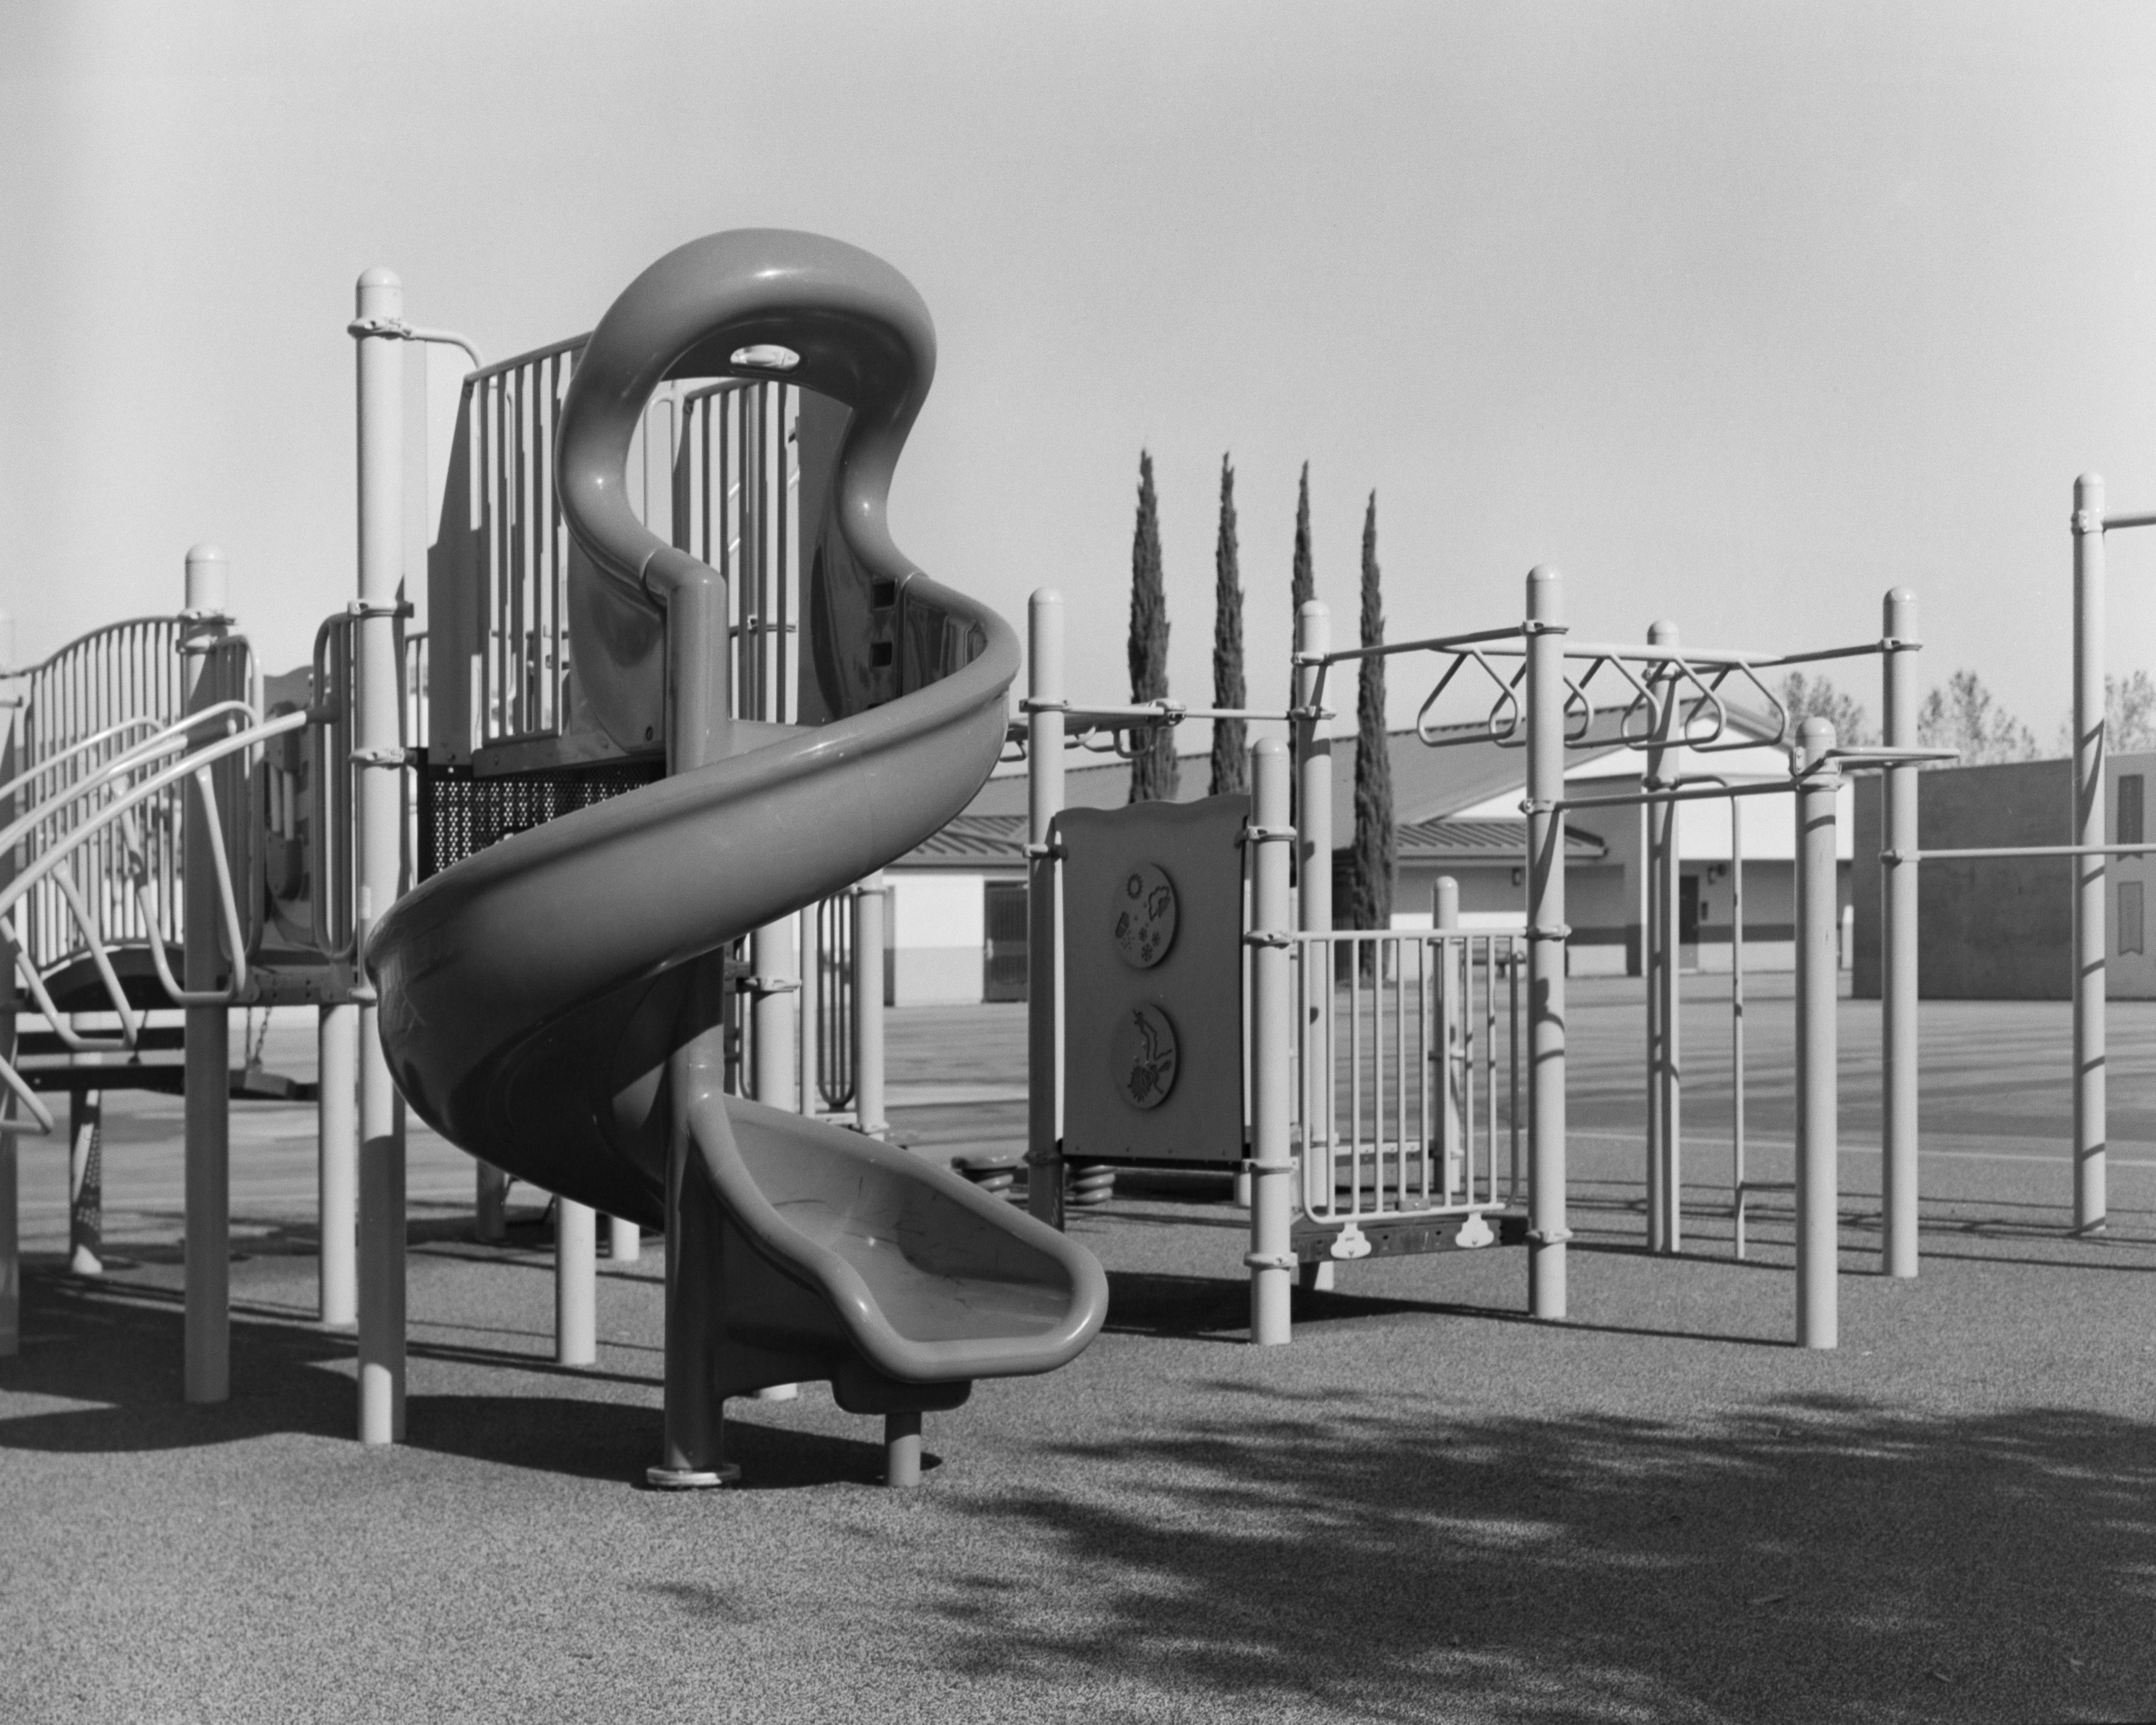 A black-and-white photograph of an elementary school playground, featuring a spiral slide.